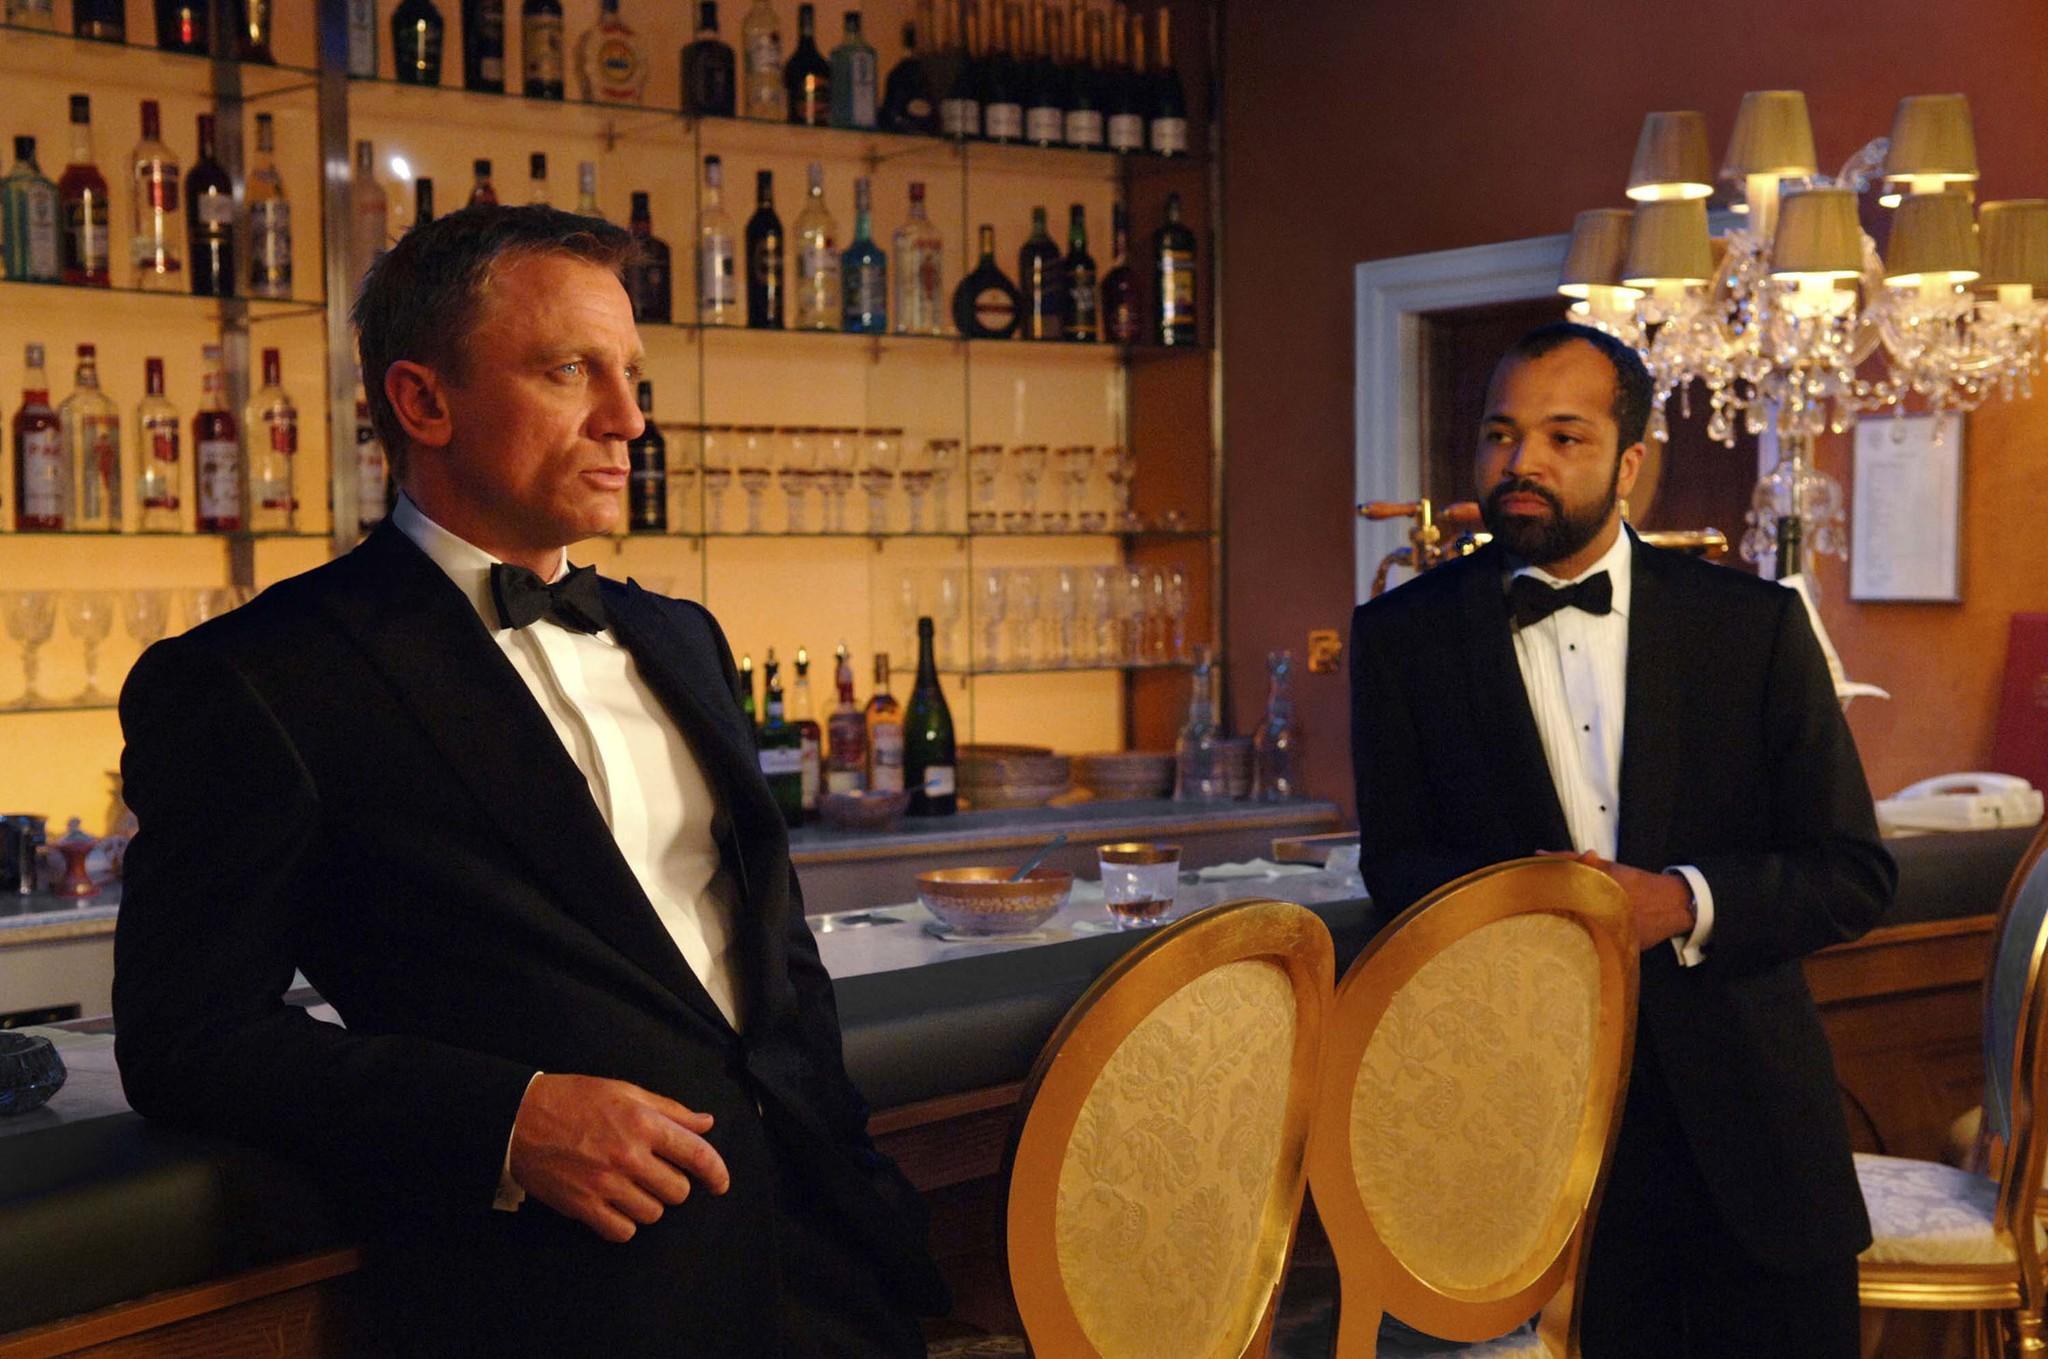 still-of-daniel-craig-and-jeffrey-wright-in-casino-royale-(2006)-large-picture